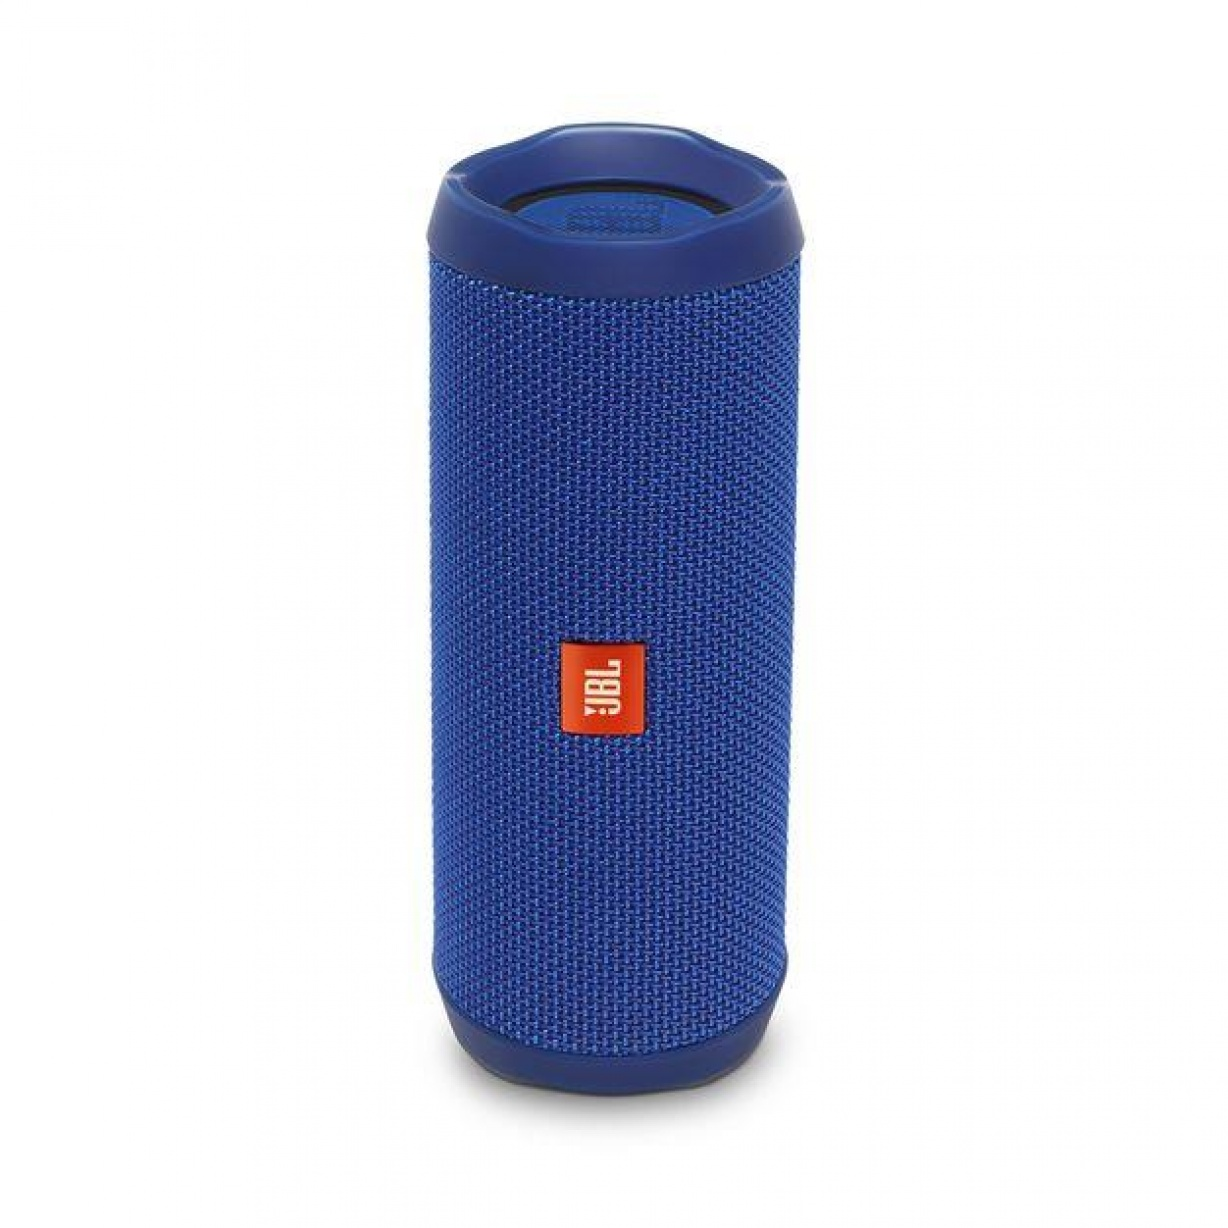 Kolonėlė JBL Flip 4 Bluetooth Speaker 1.0 Blue